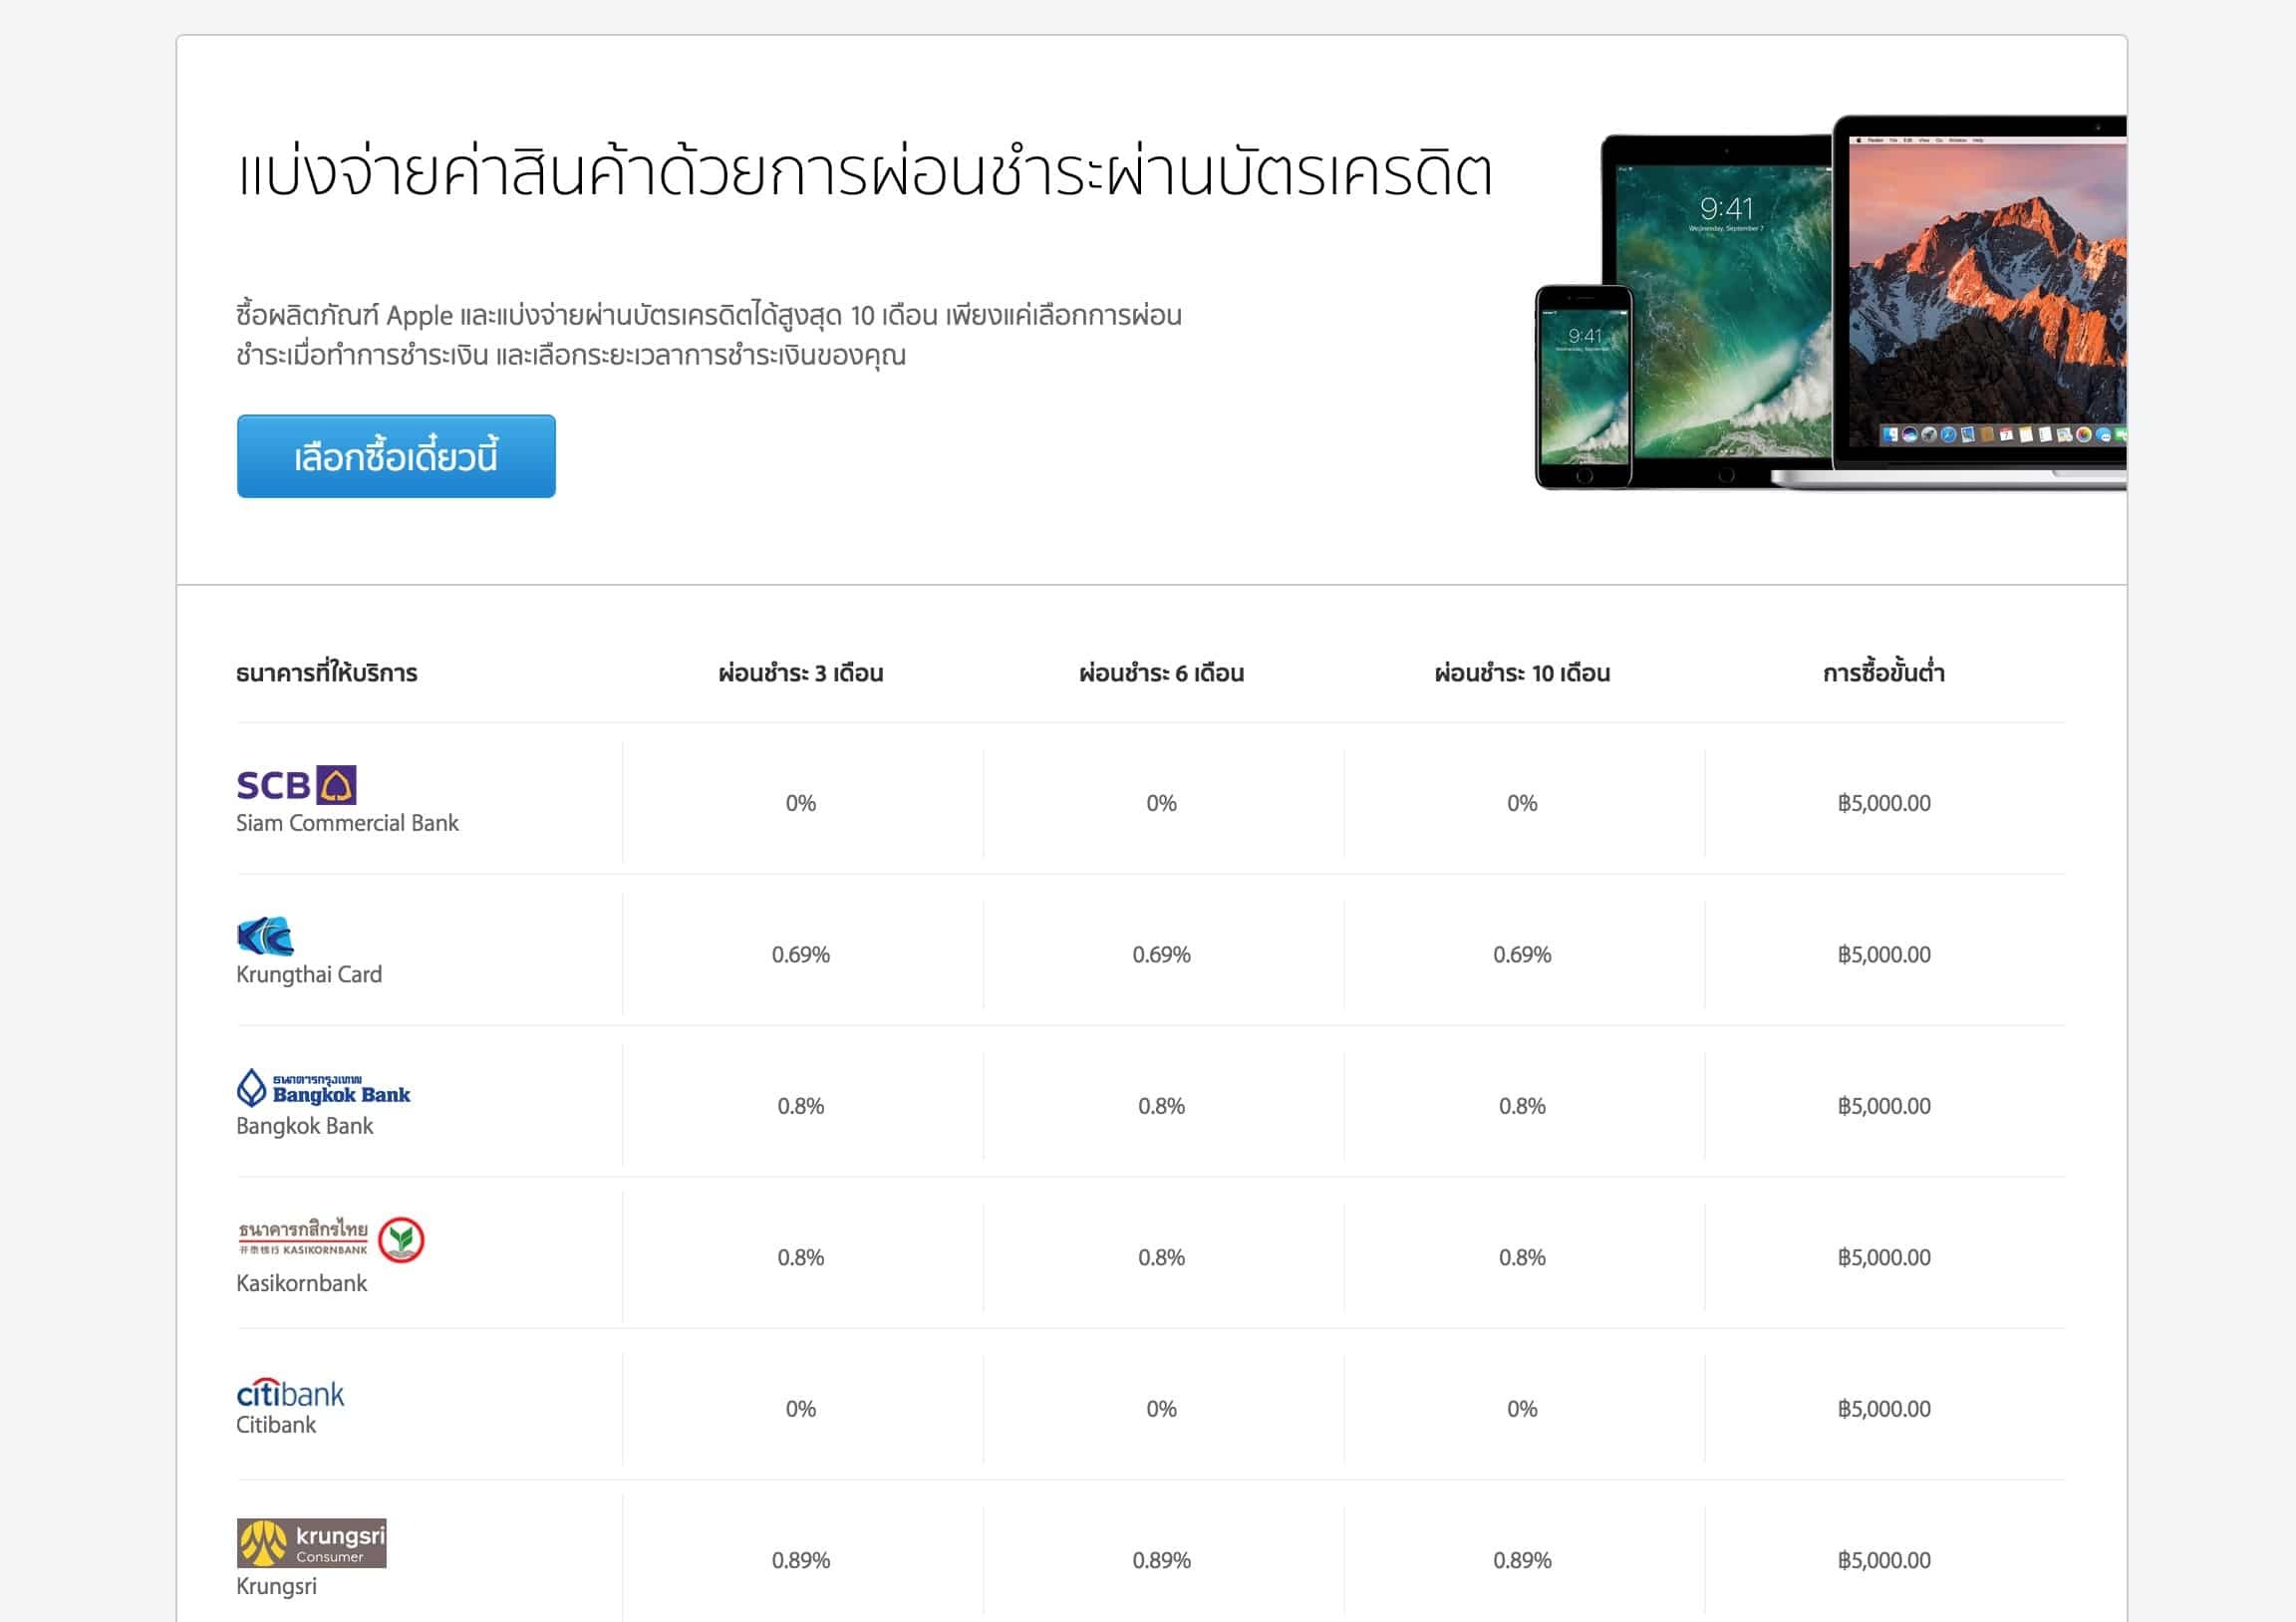 apple-online-store-thailand-promotion-for-iphone-7-and-7-plus-apple-watch-series-2-0-percent-credit-loan